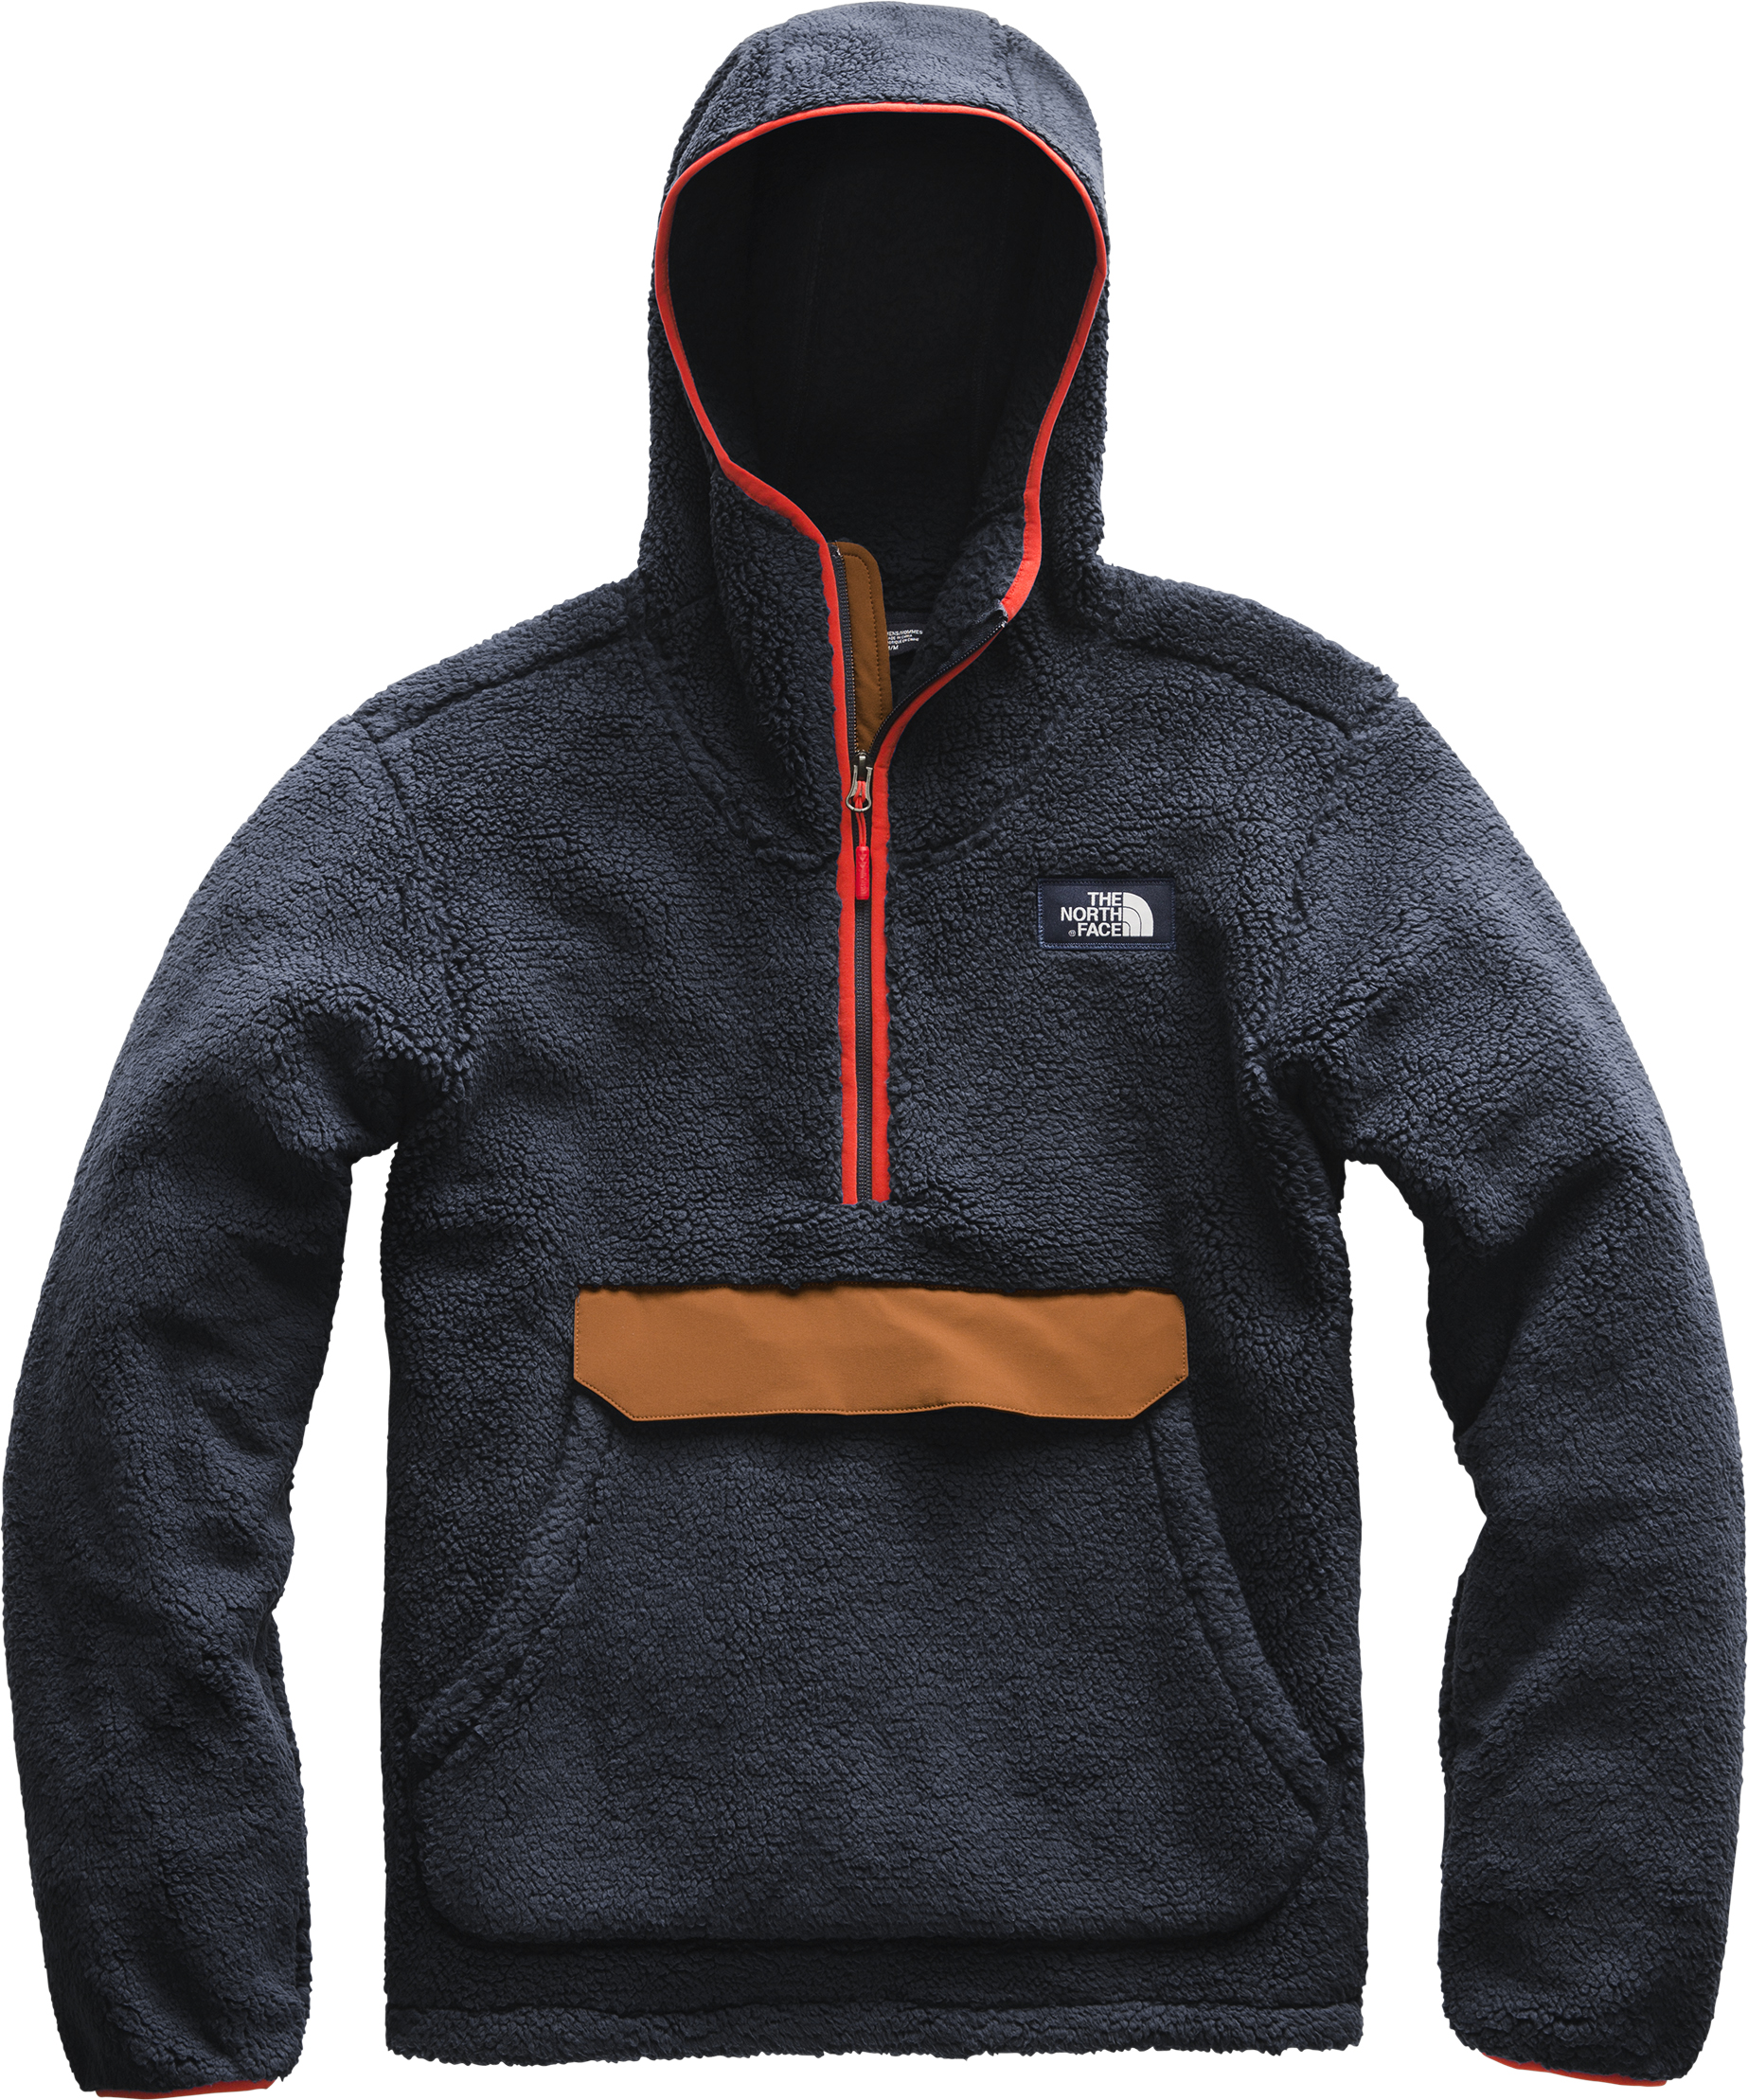 e5c8cc05 Fleece, hoodies and sweaters | MEC